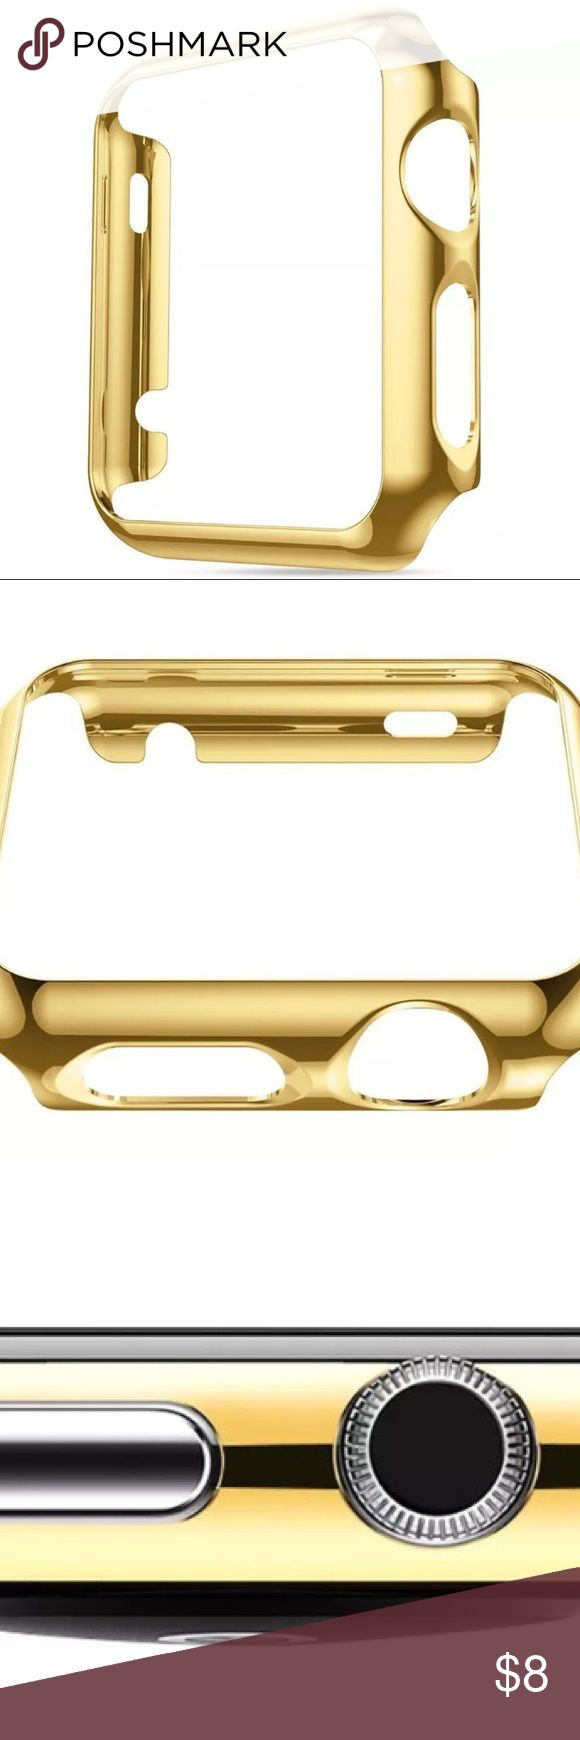 New Gold Case for Apple Watch 38mm Series 1 and 2 Brand new and High quality Case to protect your iWatch from scratches, Fashionable plating makes your watch look unique, the product is not hollow more protection for your watch. Built in Screen protector, Light weight with precise cut openings to allow full access to all functions.  Fits Apple Watch Series 1 and 2 38mm. Please inquire about the  matching band also available and ready to be bundle Accessories Phone Cases